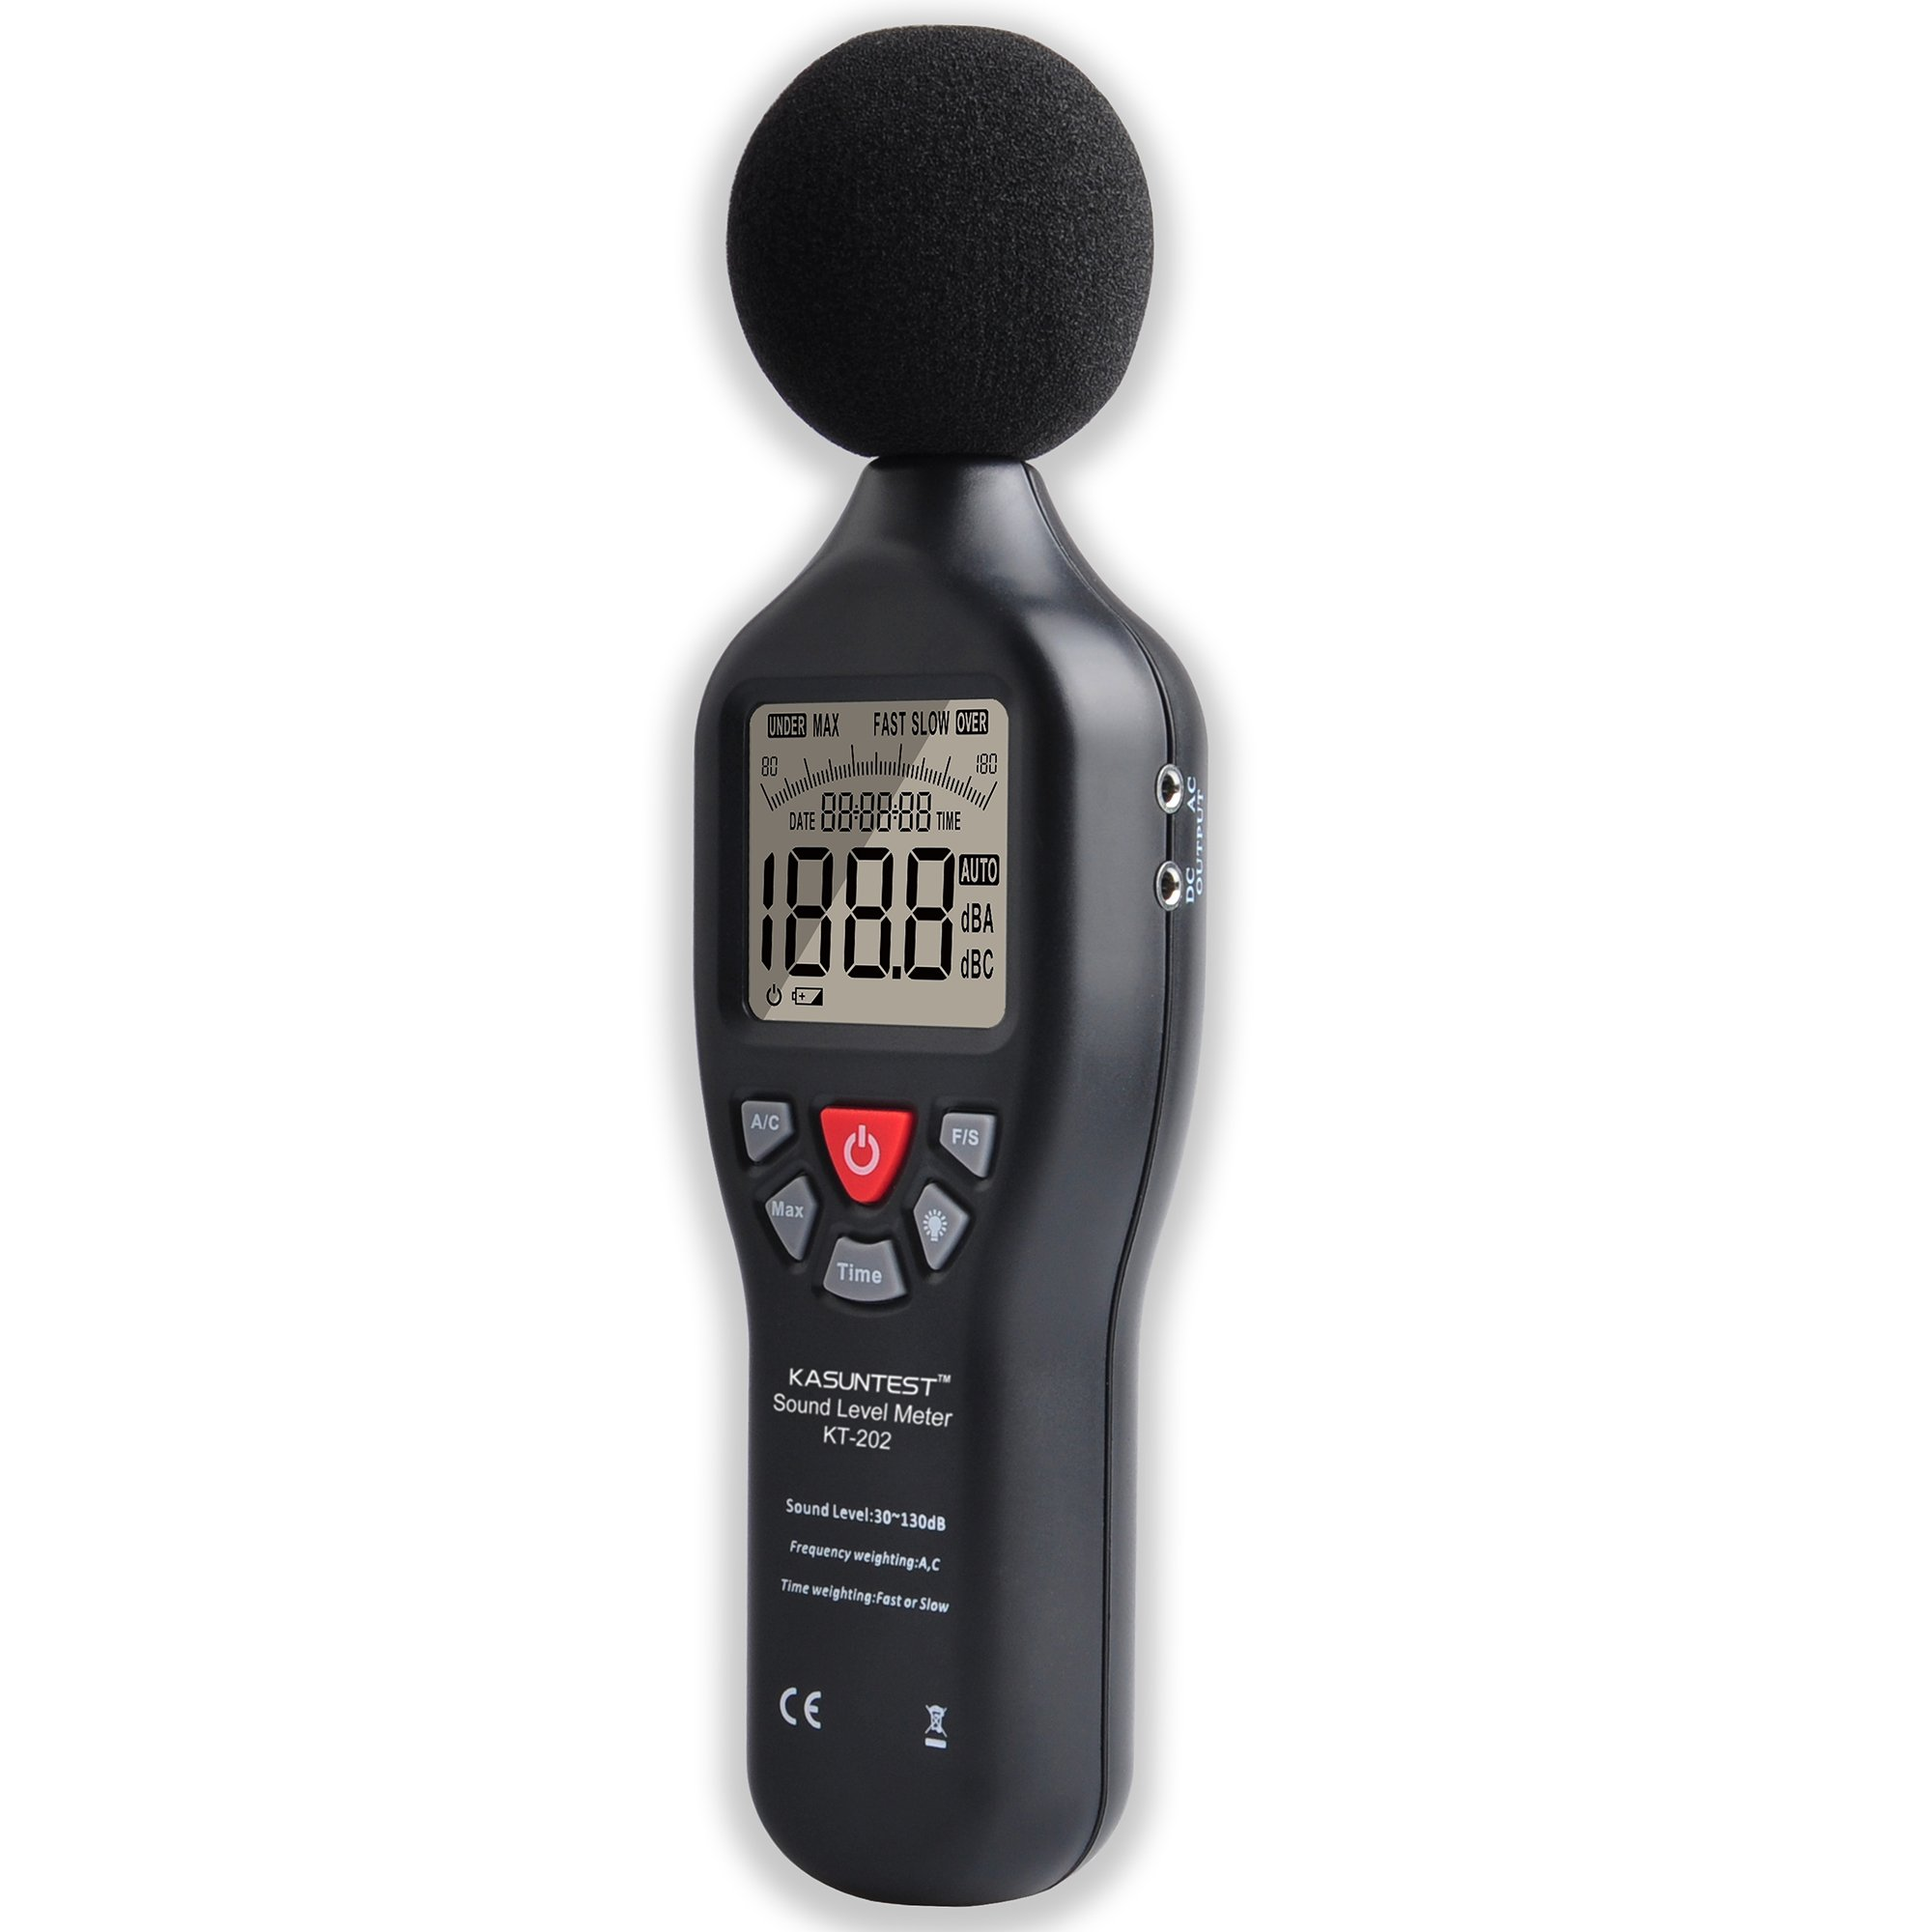 KASUNTEST Professional Sound Level Meter Digital Noise Tester Range:30 to 130dB with Large LCD Display and Backlit by K KASUNTEST